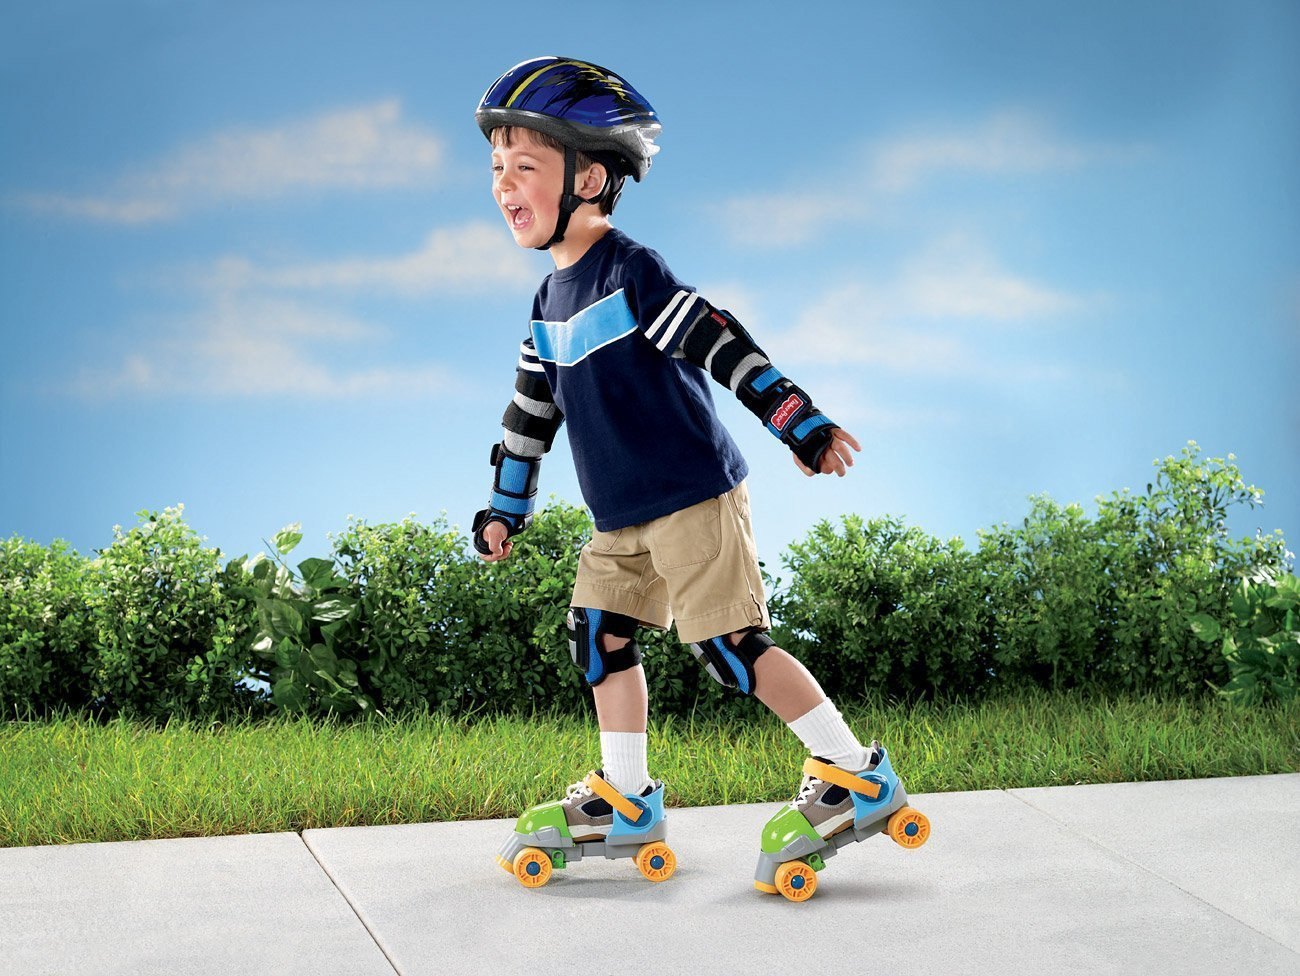 Roller Skating The Secret To A Healthy And Happy Childhood Share A Word